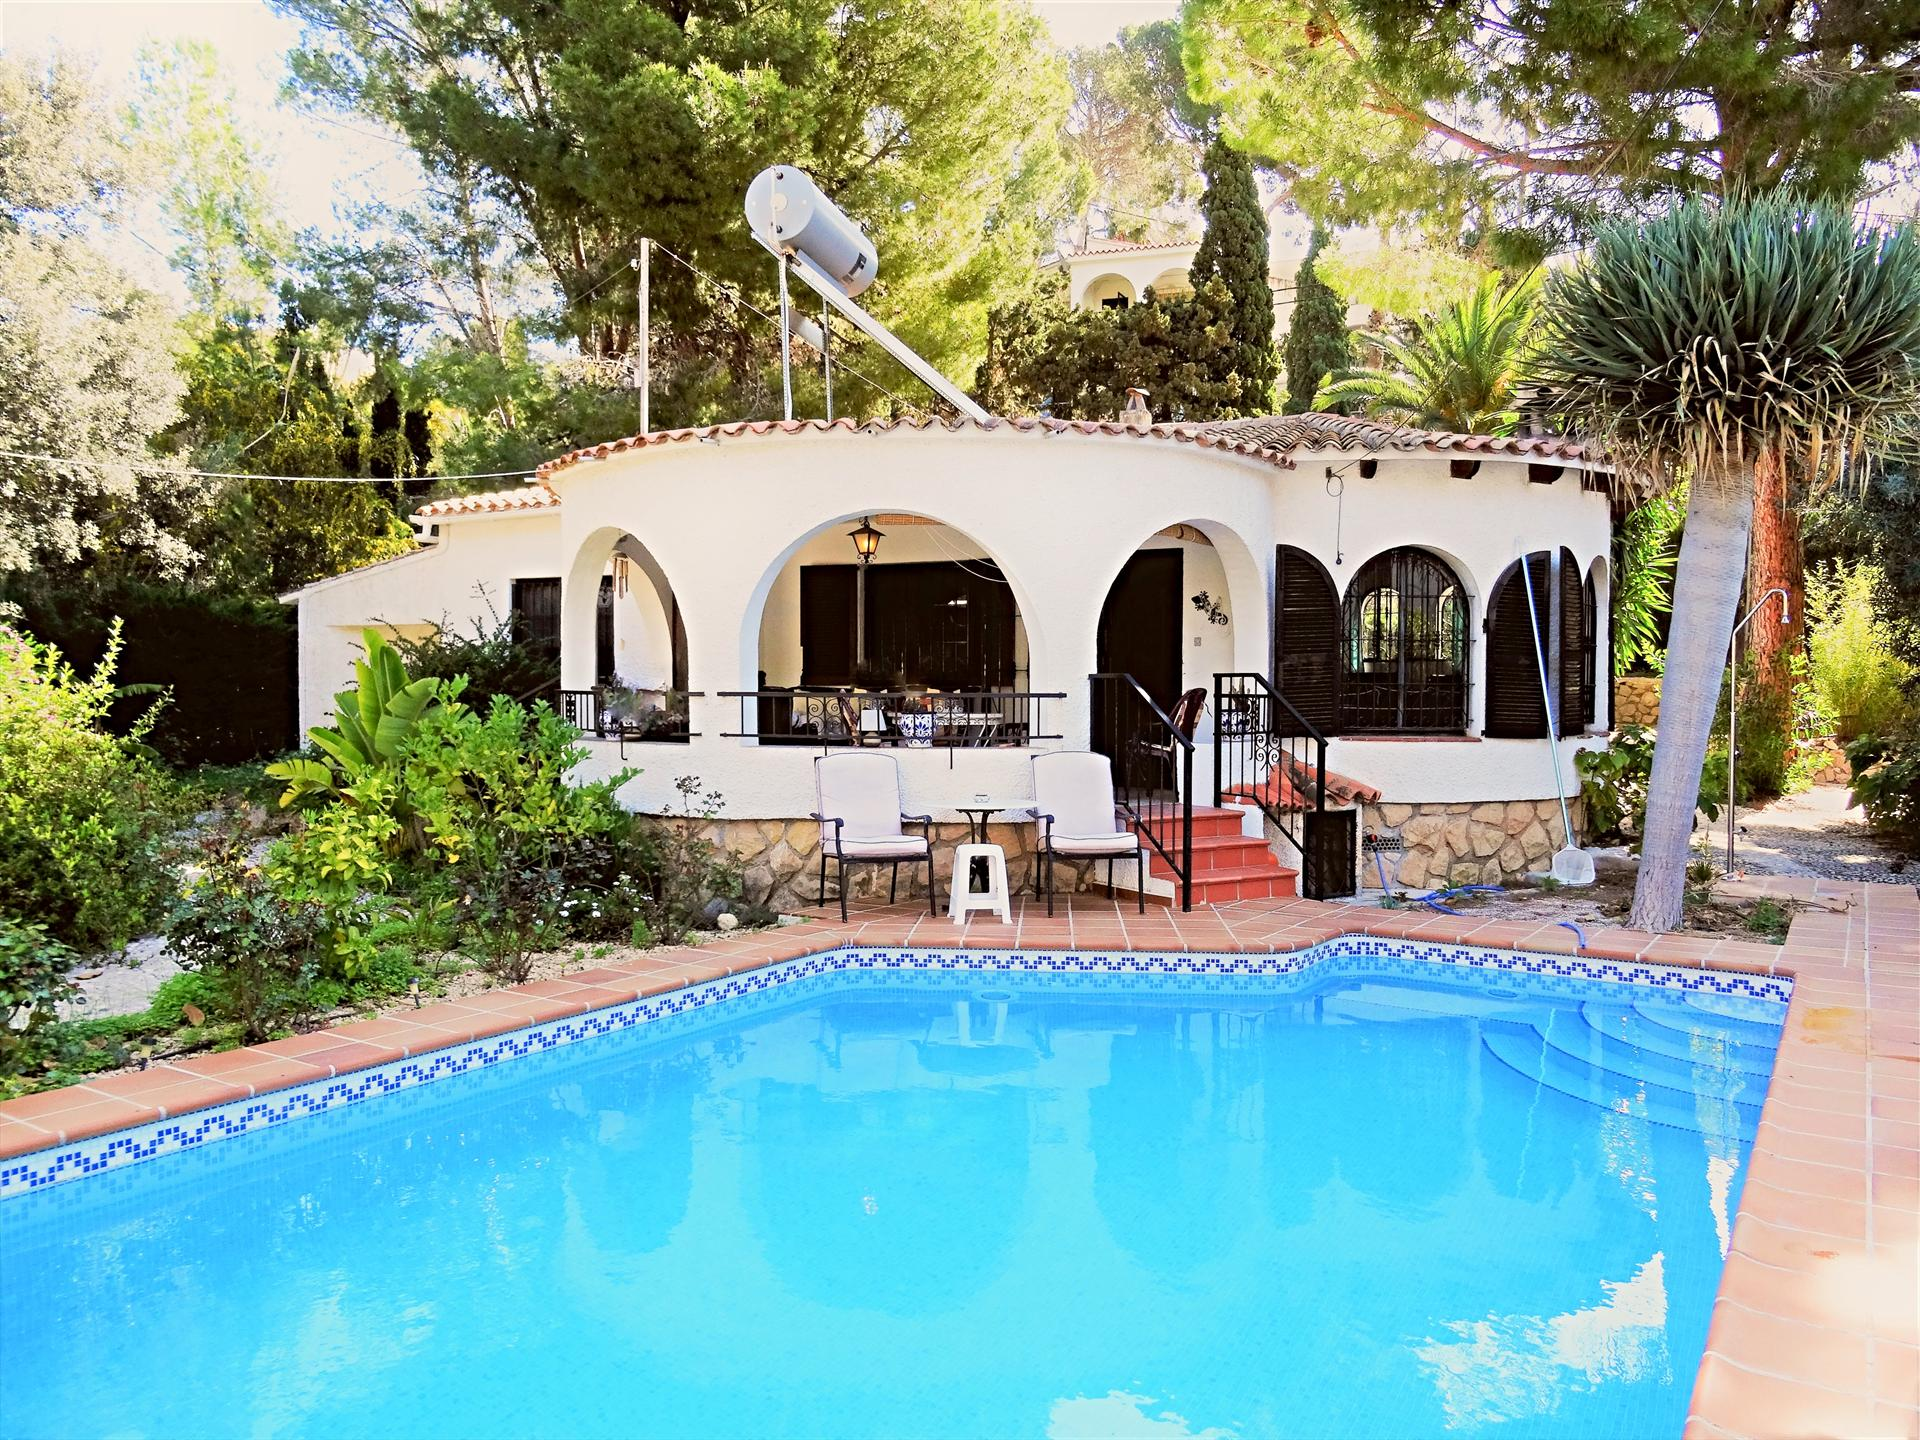 Rustic and comfortable villa in Altea, on the Costa Blanca, Spain  with private pool for 6 persons